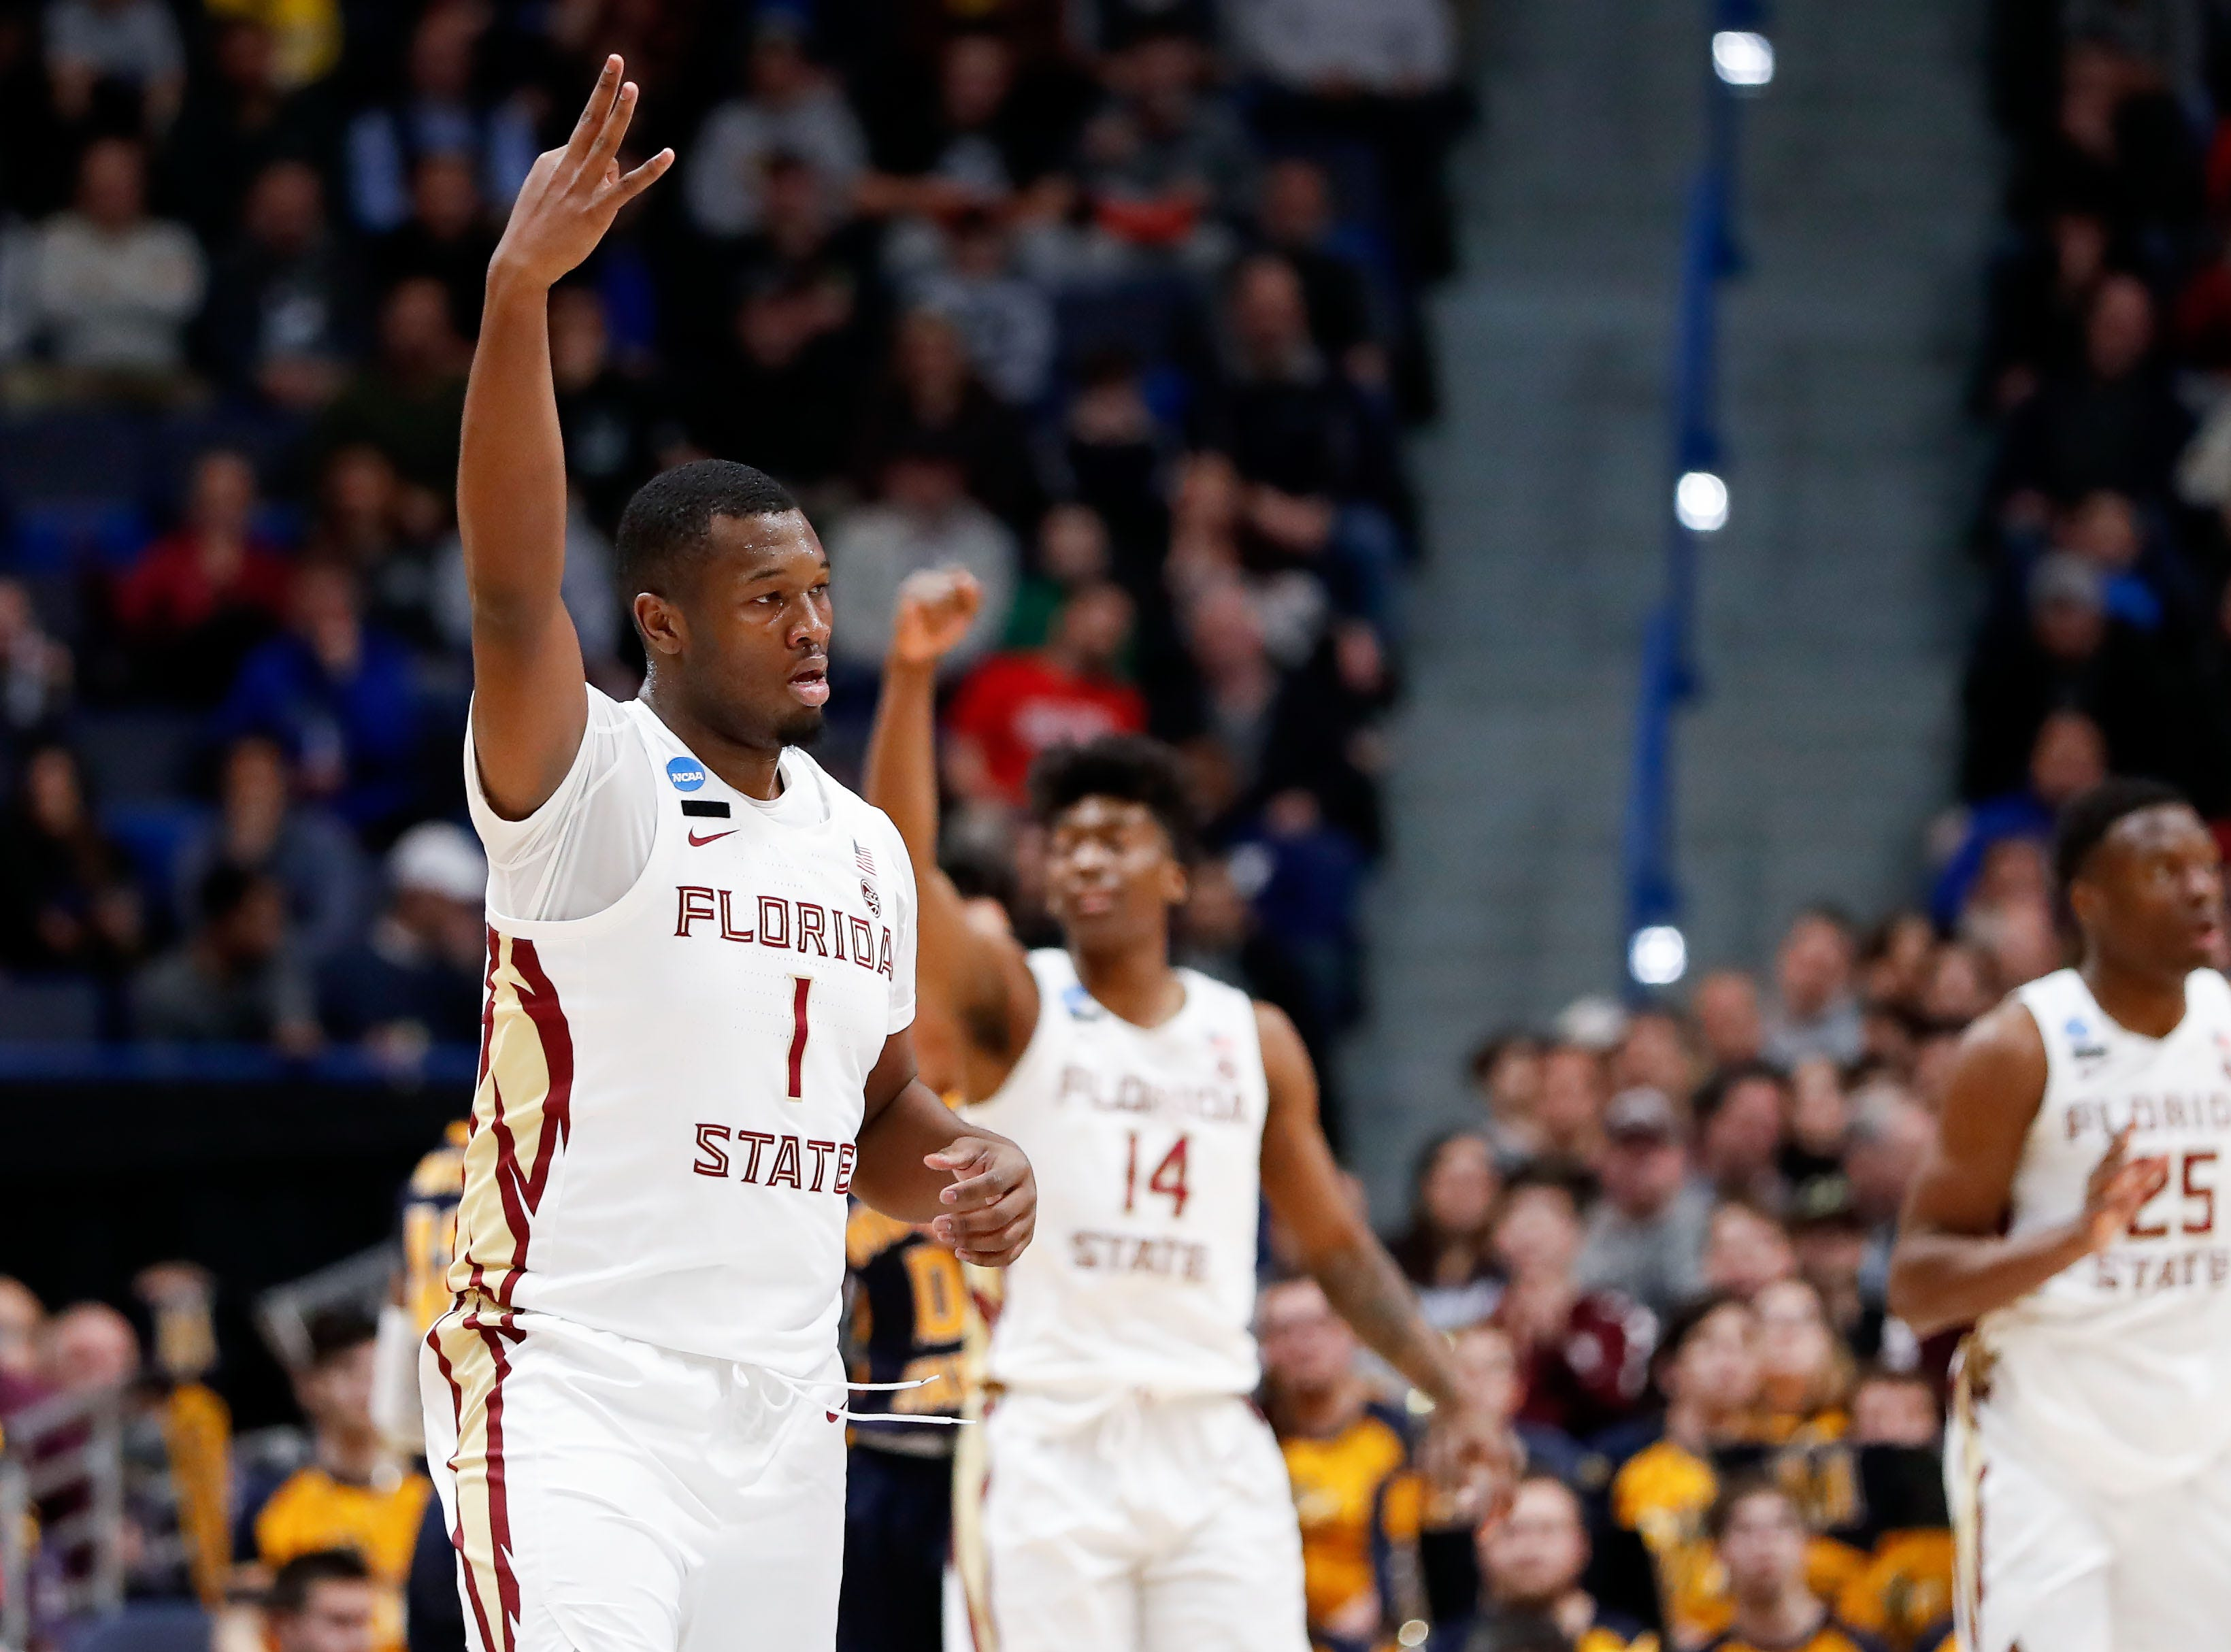 Mar 23, 2019; Hartford, CT, USA; Florida State Seminoles forward Raiquan Gray (1) reacts after a score against the Murray State Racers during the first half of a game in the second round of the 2019 NCAA Tournament at XL Center. Mandatory Credit: David Butler II-USA TODAY Sports